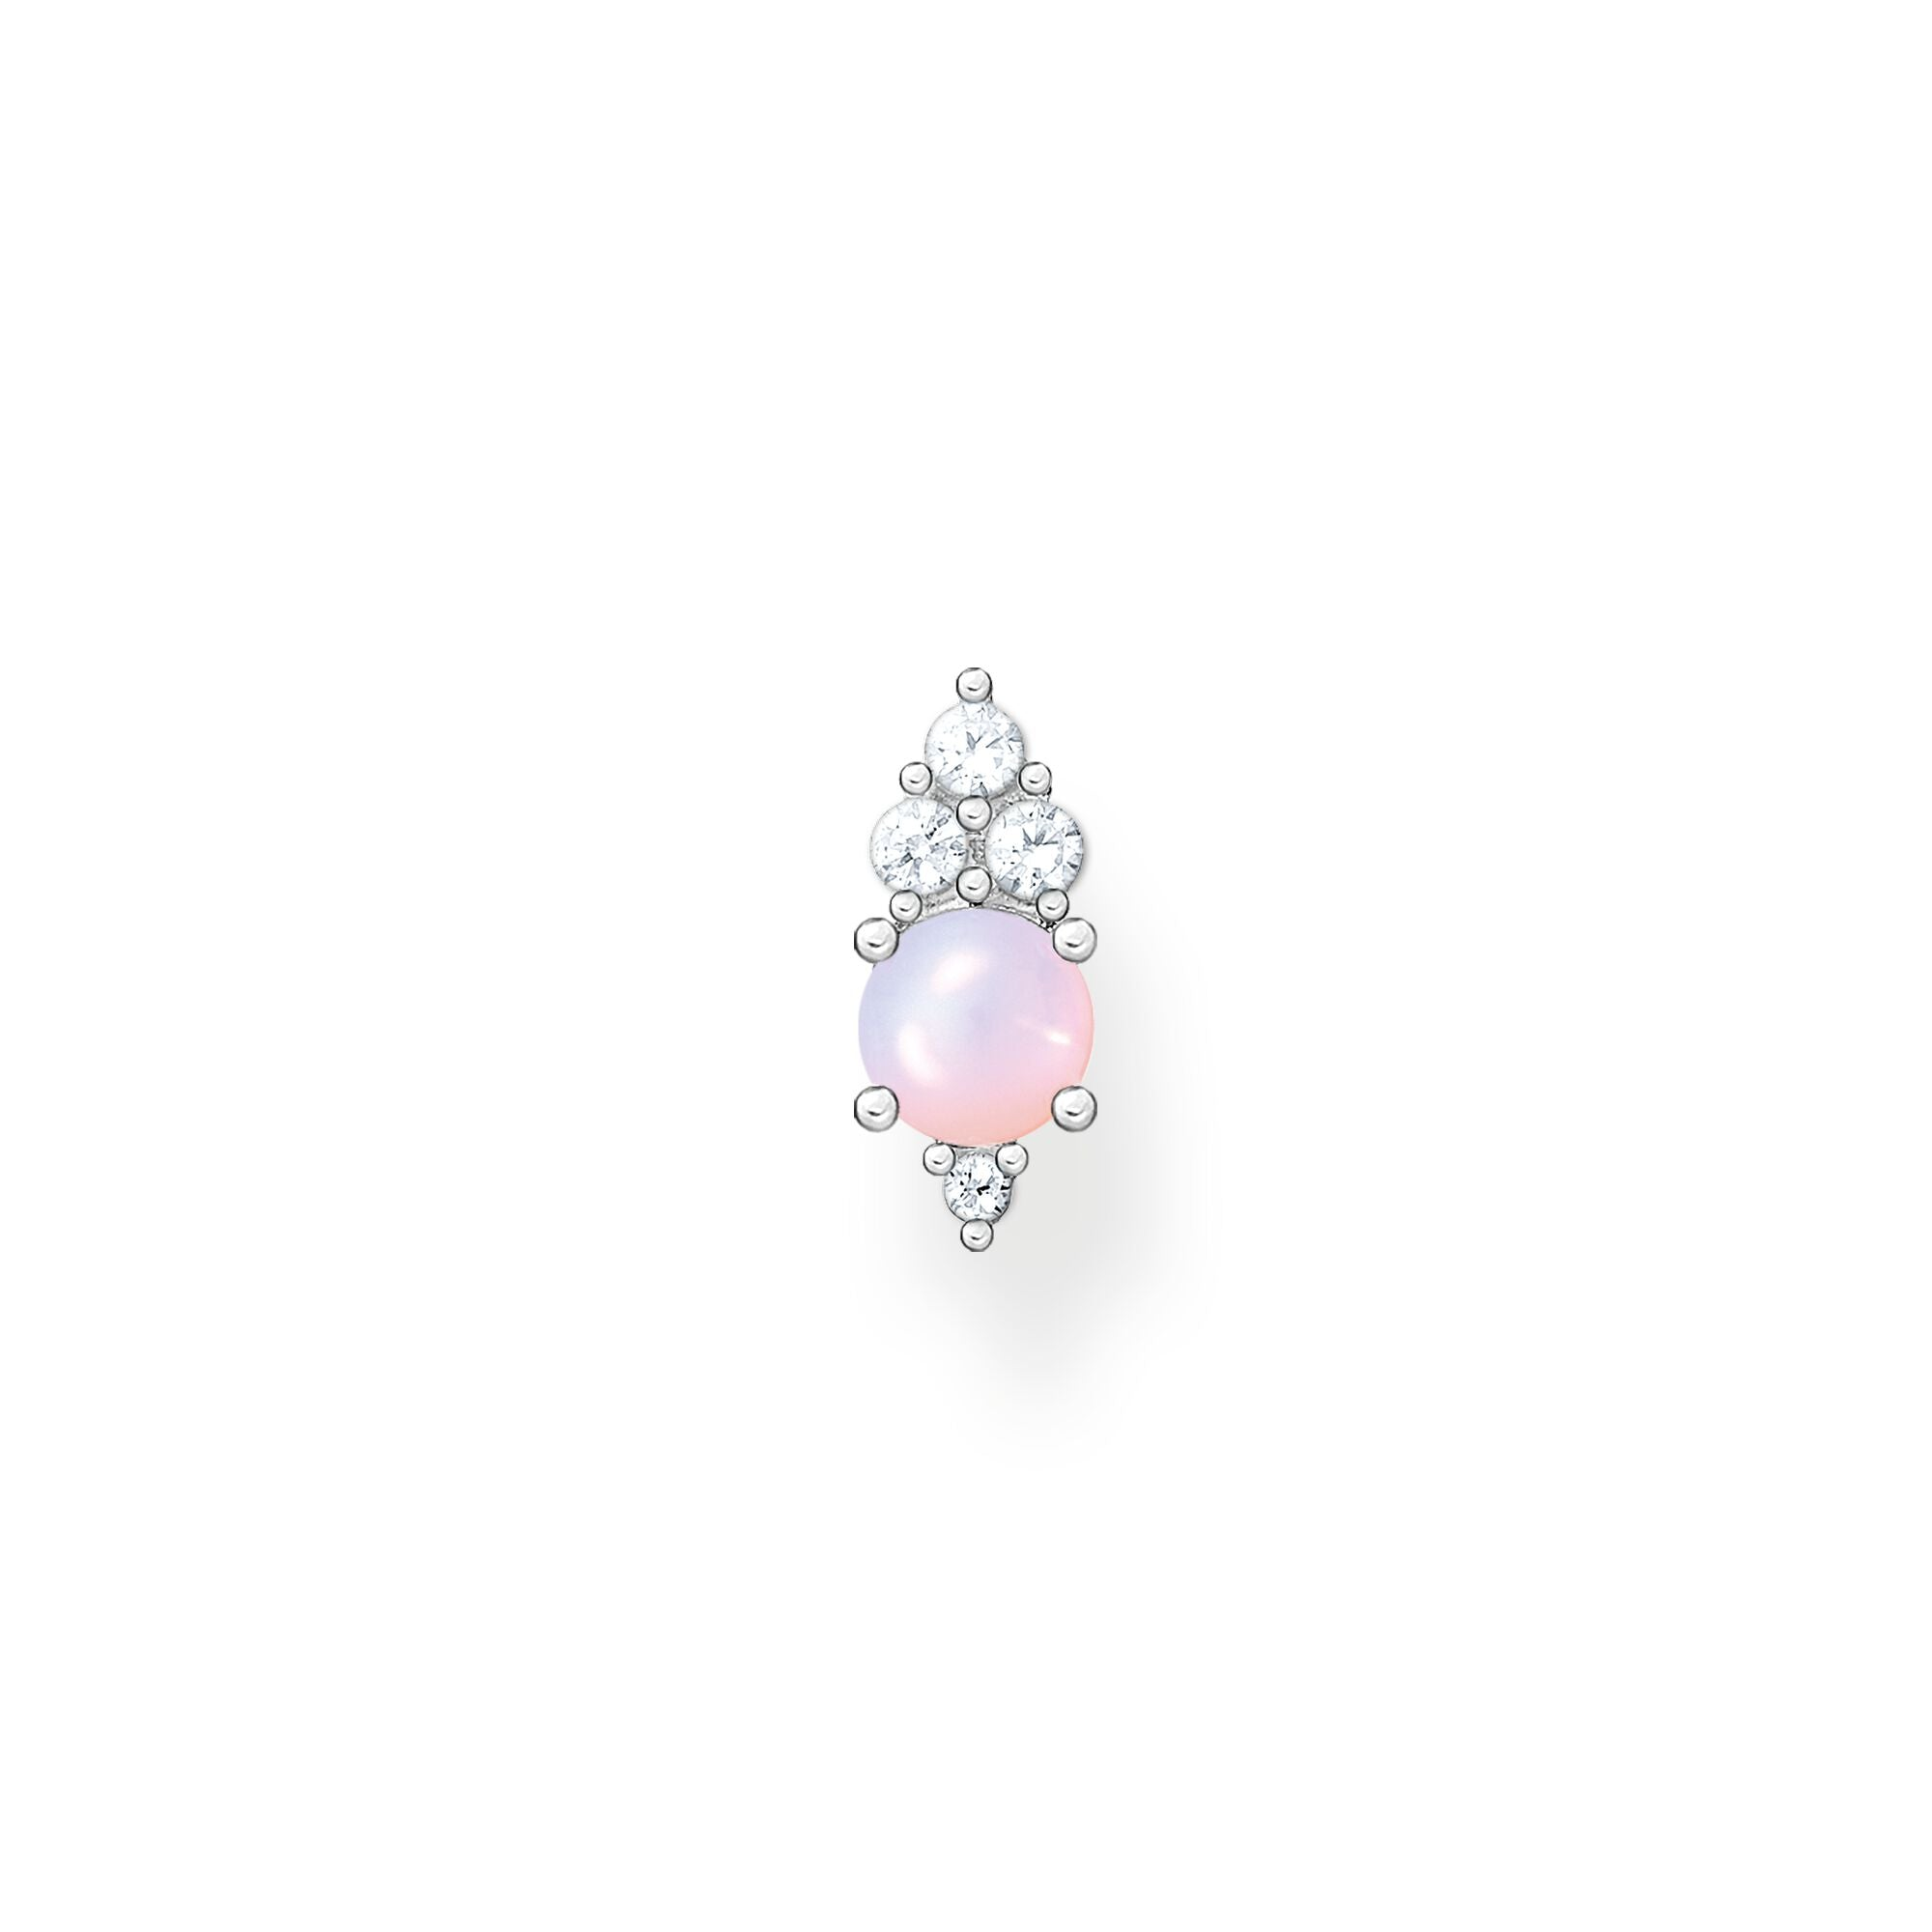 Thomas Sabo sterling silver and pink opal effect stone, white cz single stud earring